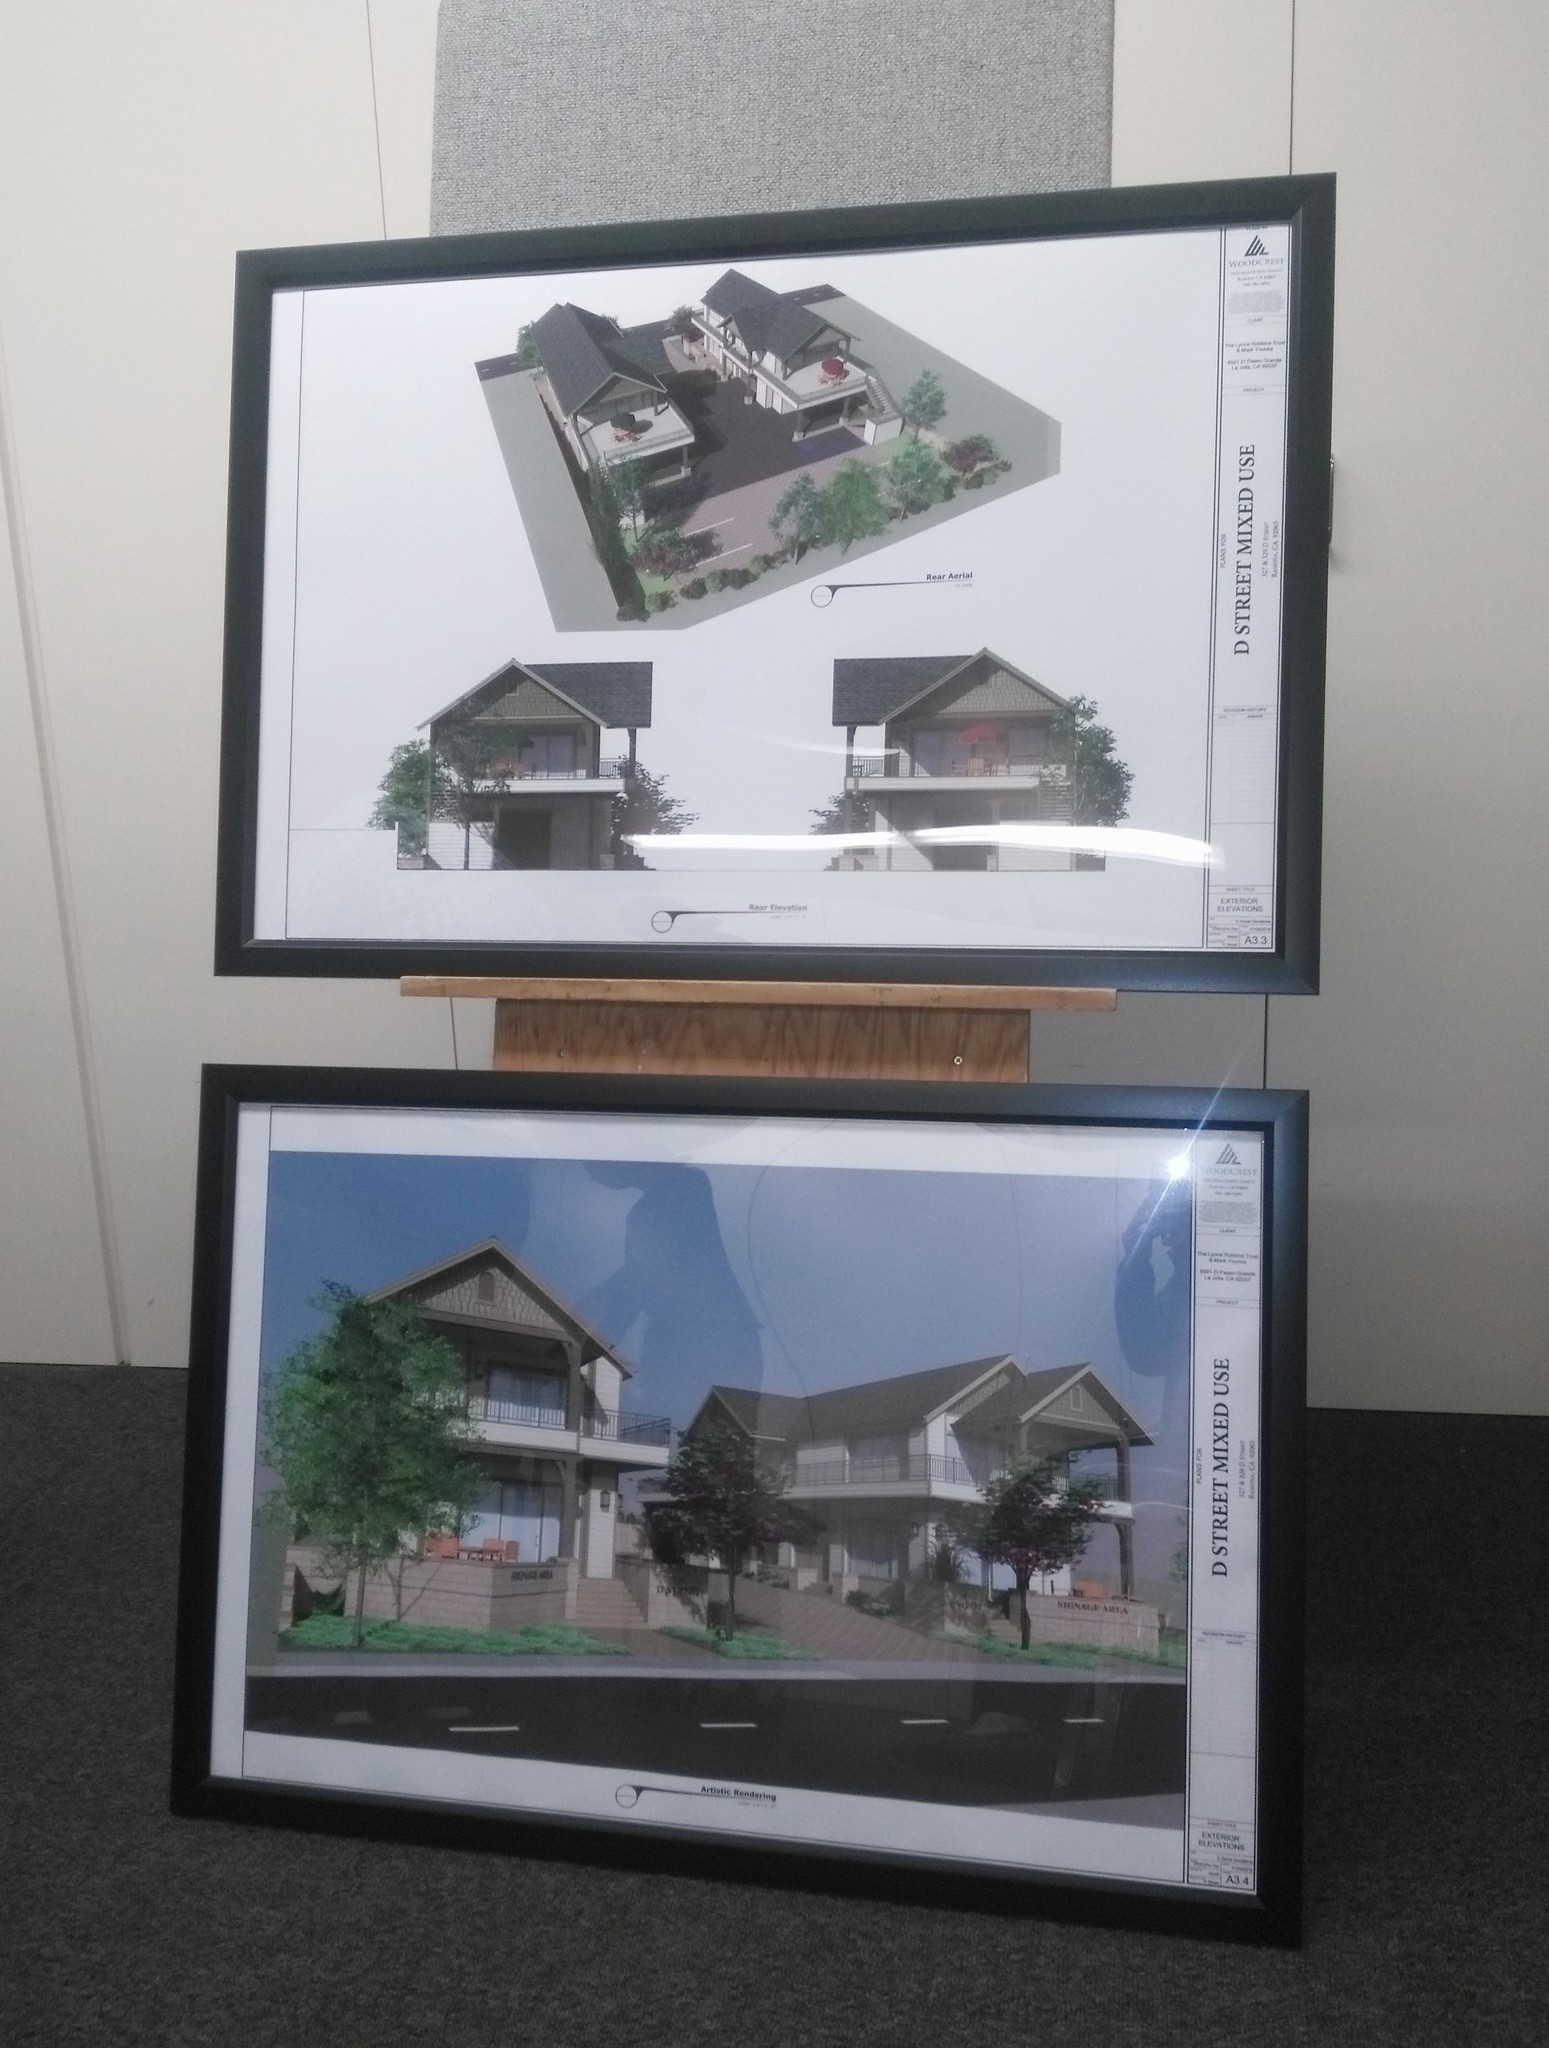 These renderings depict two mixed-use projects proposed to be built at 327 and 329 D streets, behind the former Sizzler restaurant.